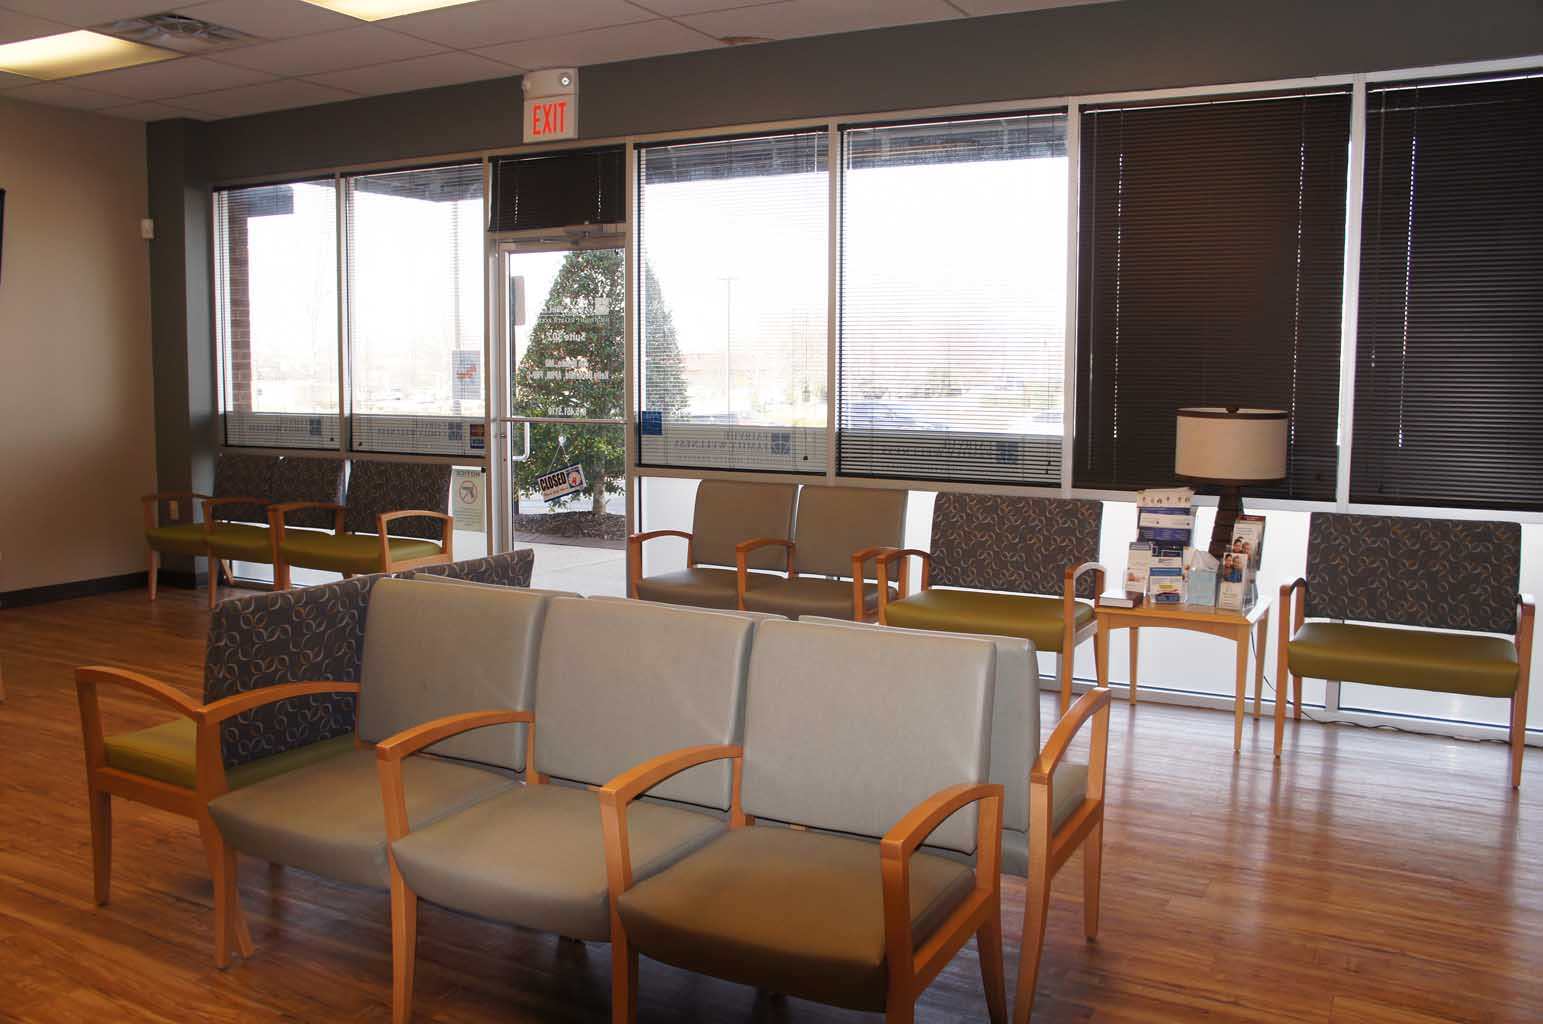 Fairvue Family Wellness, Gallatin TN - Patient Waiting Area